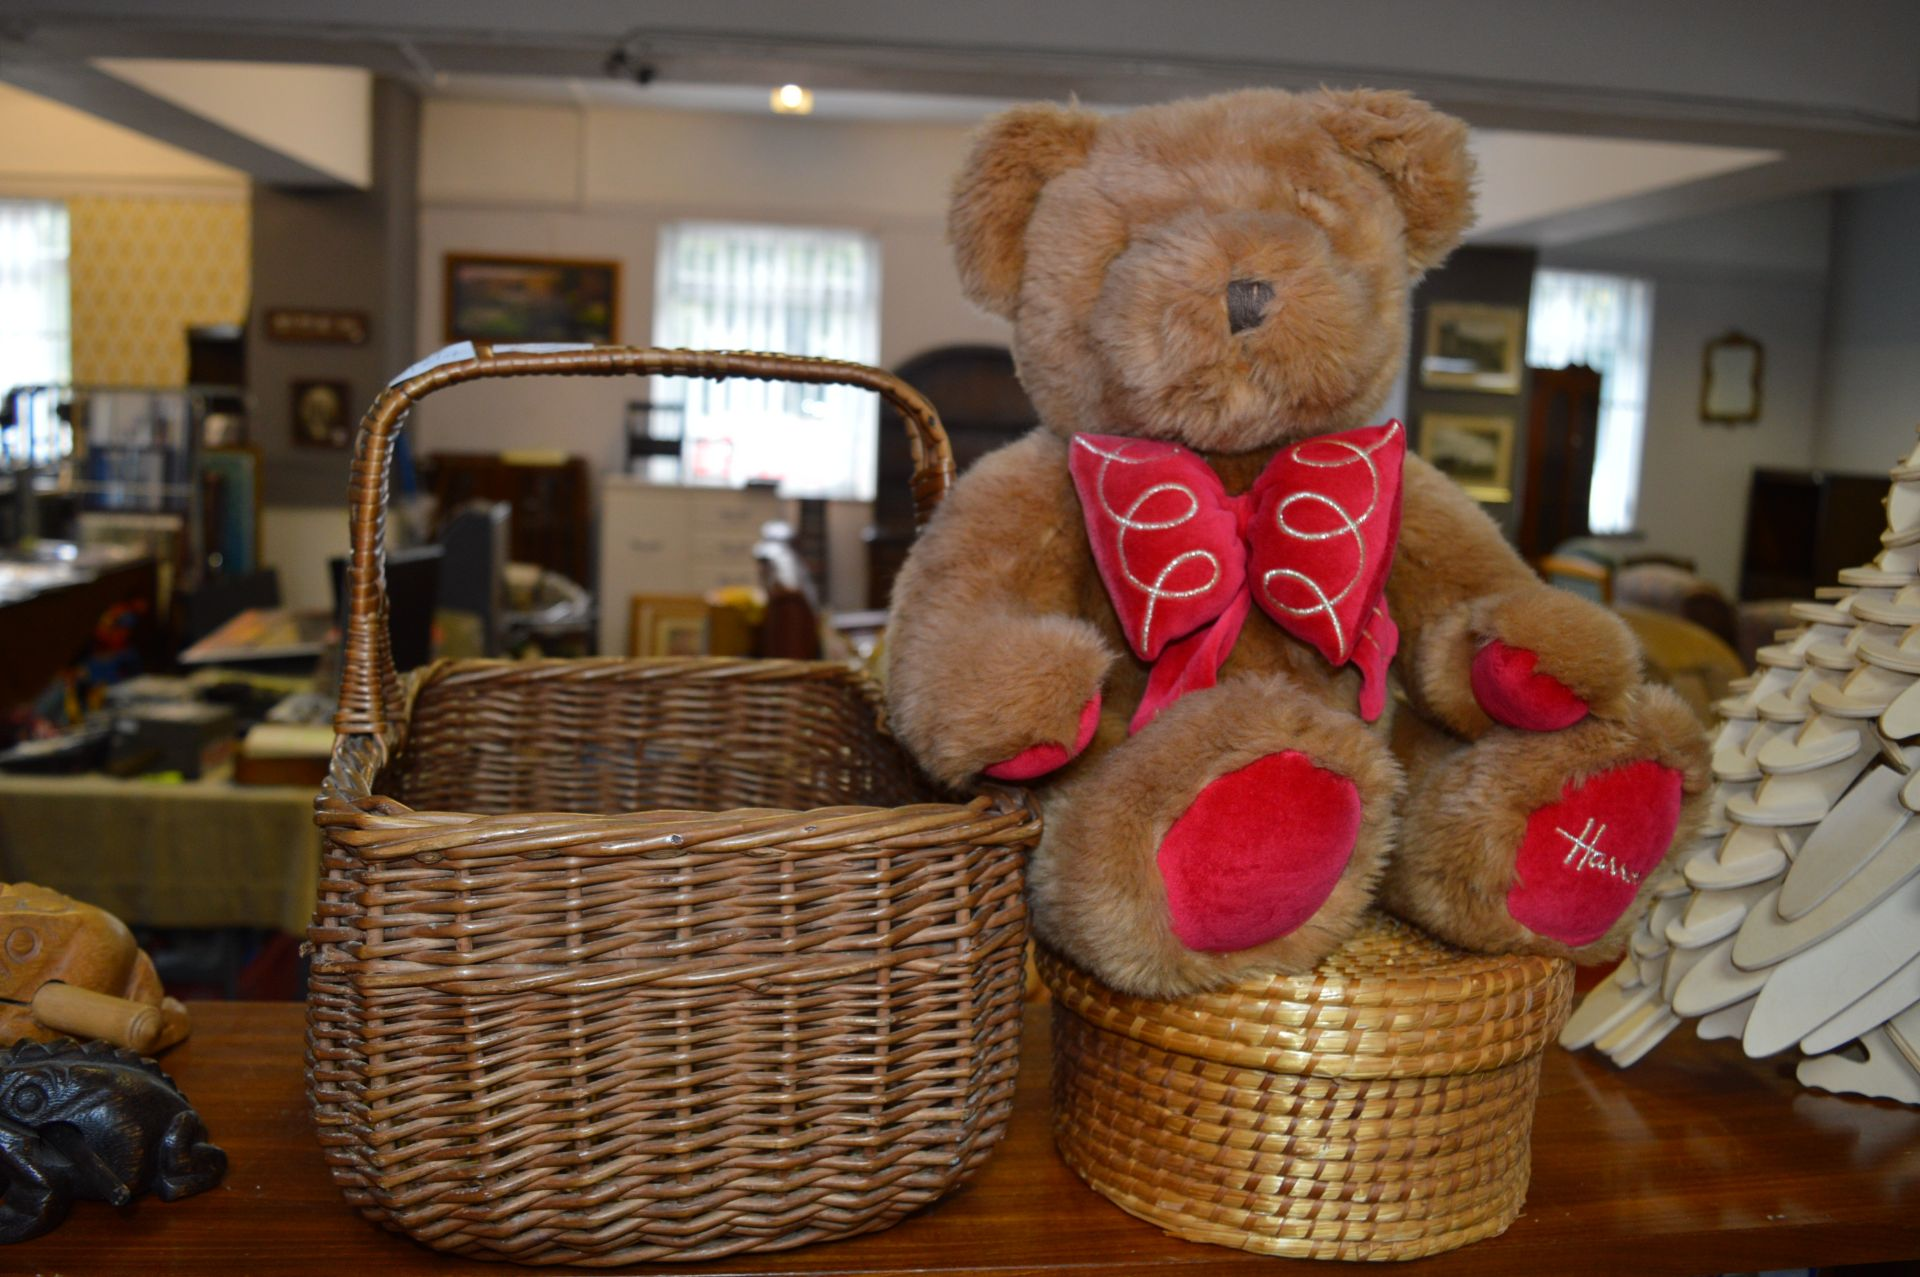 Lot 55 - Basket, Teddy Bear and a Sewing Box